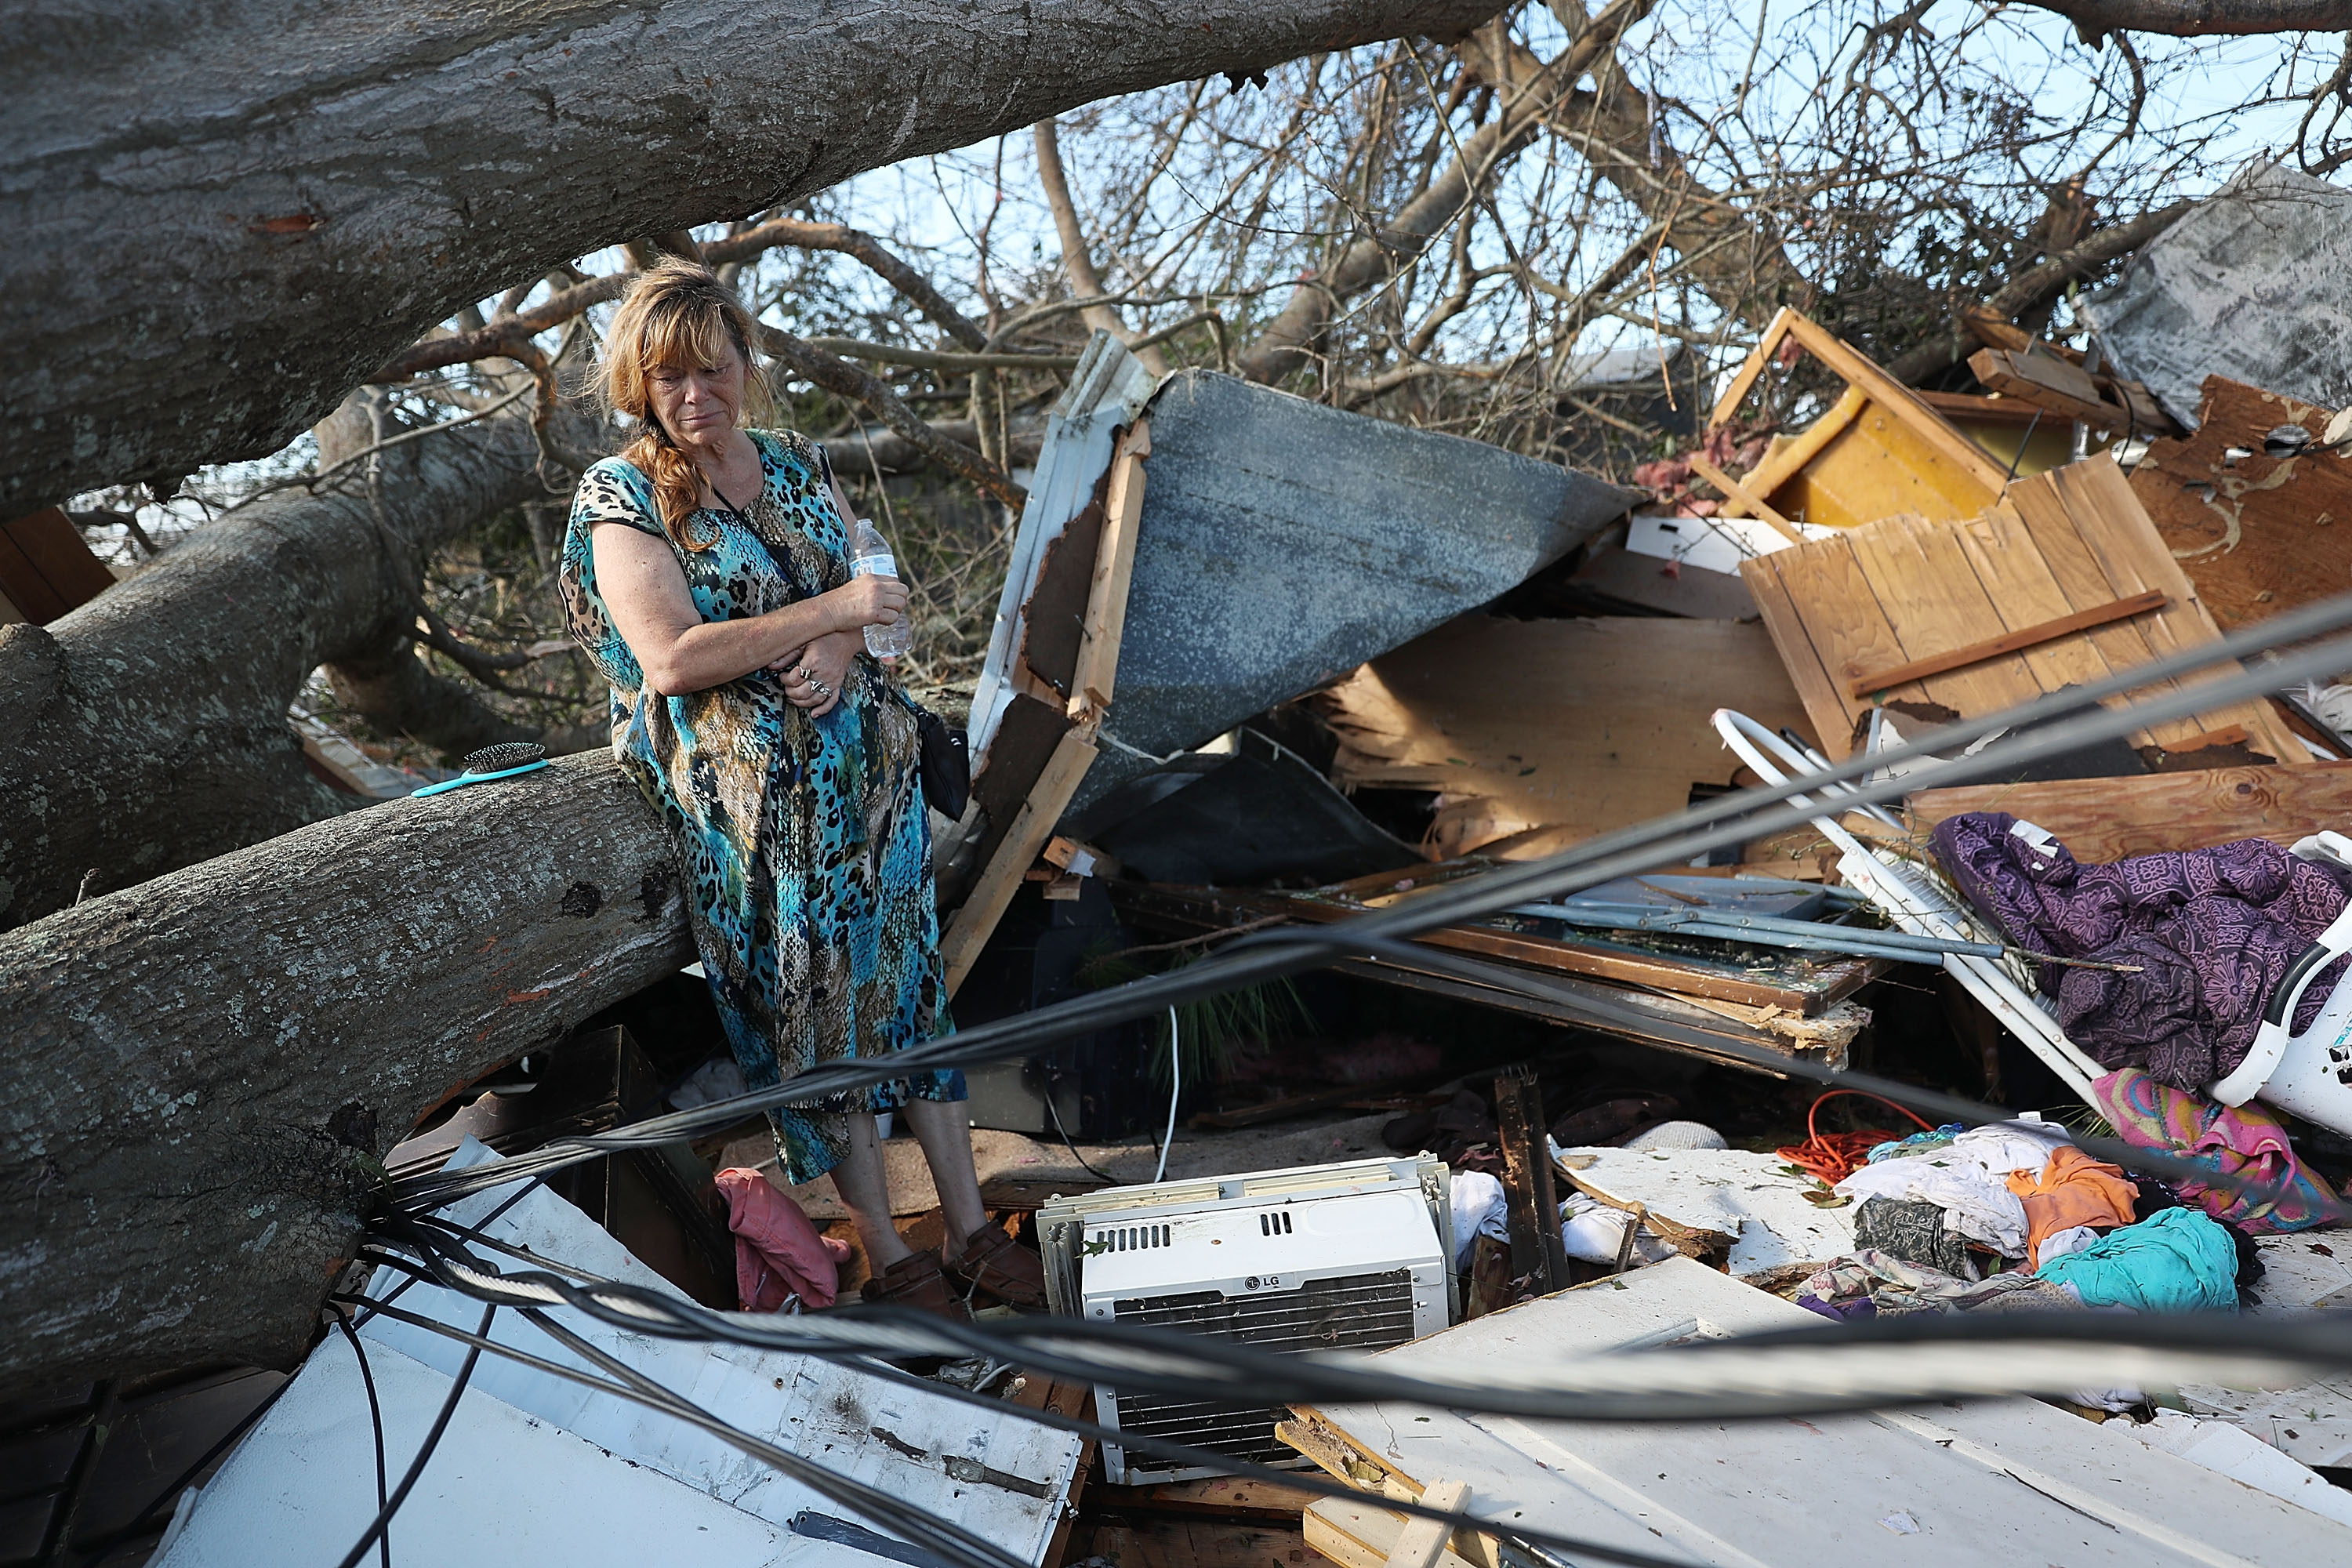 Kathy Coy stands among what is left of her home after Hurricane Michael destroyed it on October 11, 2018, in Panama City, Florida. She said she was in the home when it was blown apart and is thankful to be alive. The hurricane hit the Florida Panhandle as a category 4 storm. (Getty)